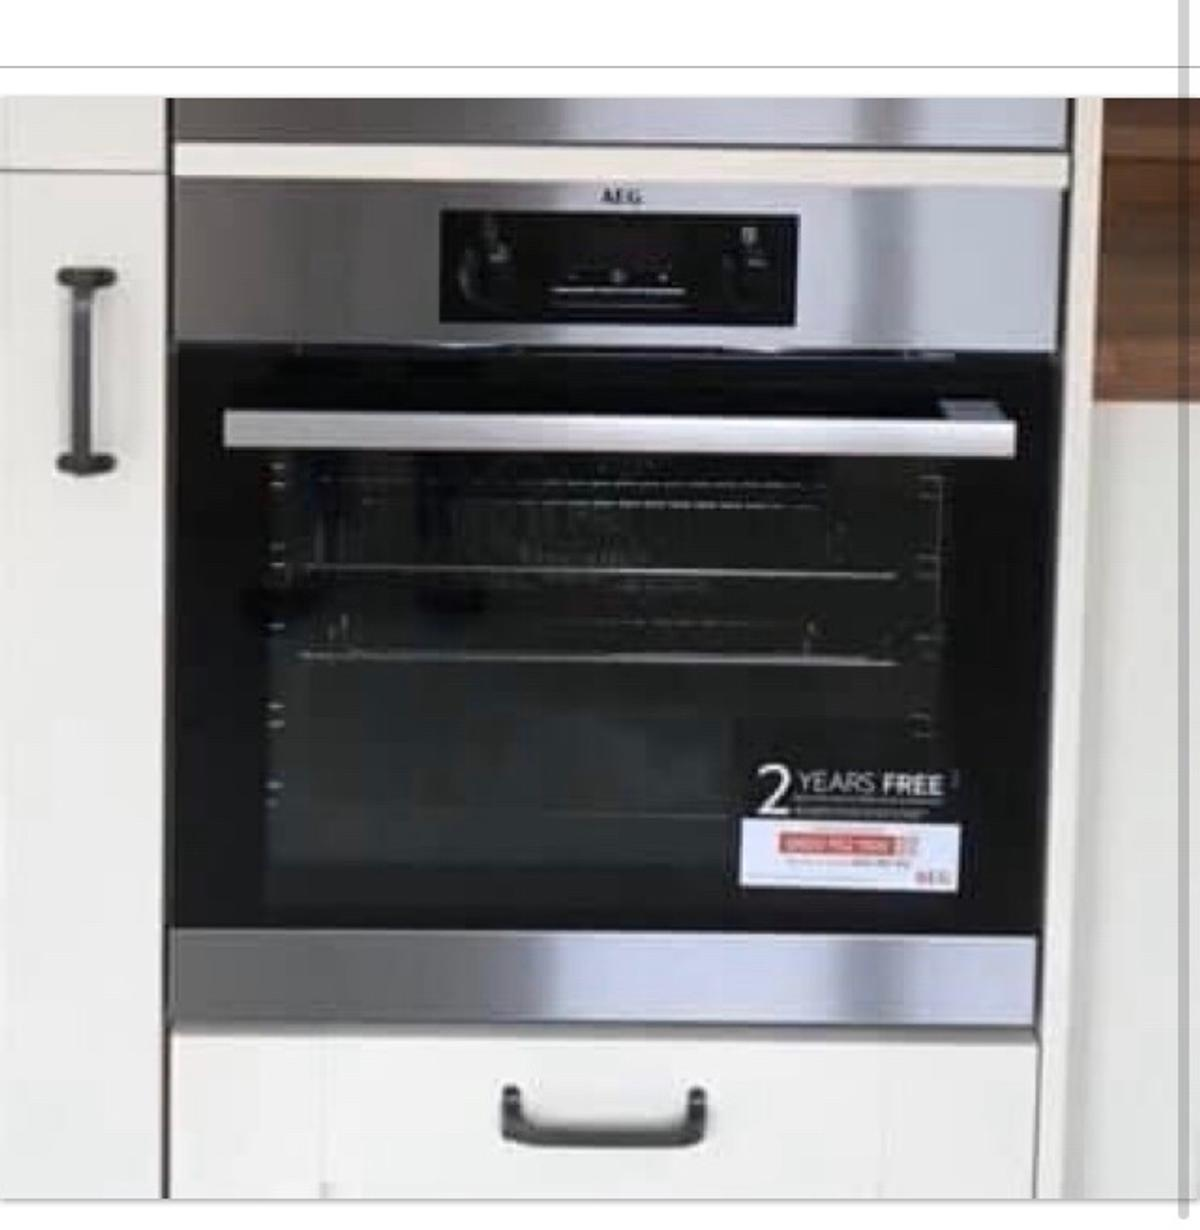 Selling a BRAND NEW AEG oven NOT BEEN USED had it for less than 6 months Collection only WA5 Model identification: BEB231011M Volume: 721 Mass: 27.6kg